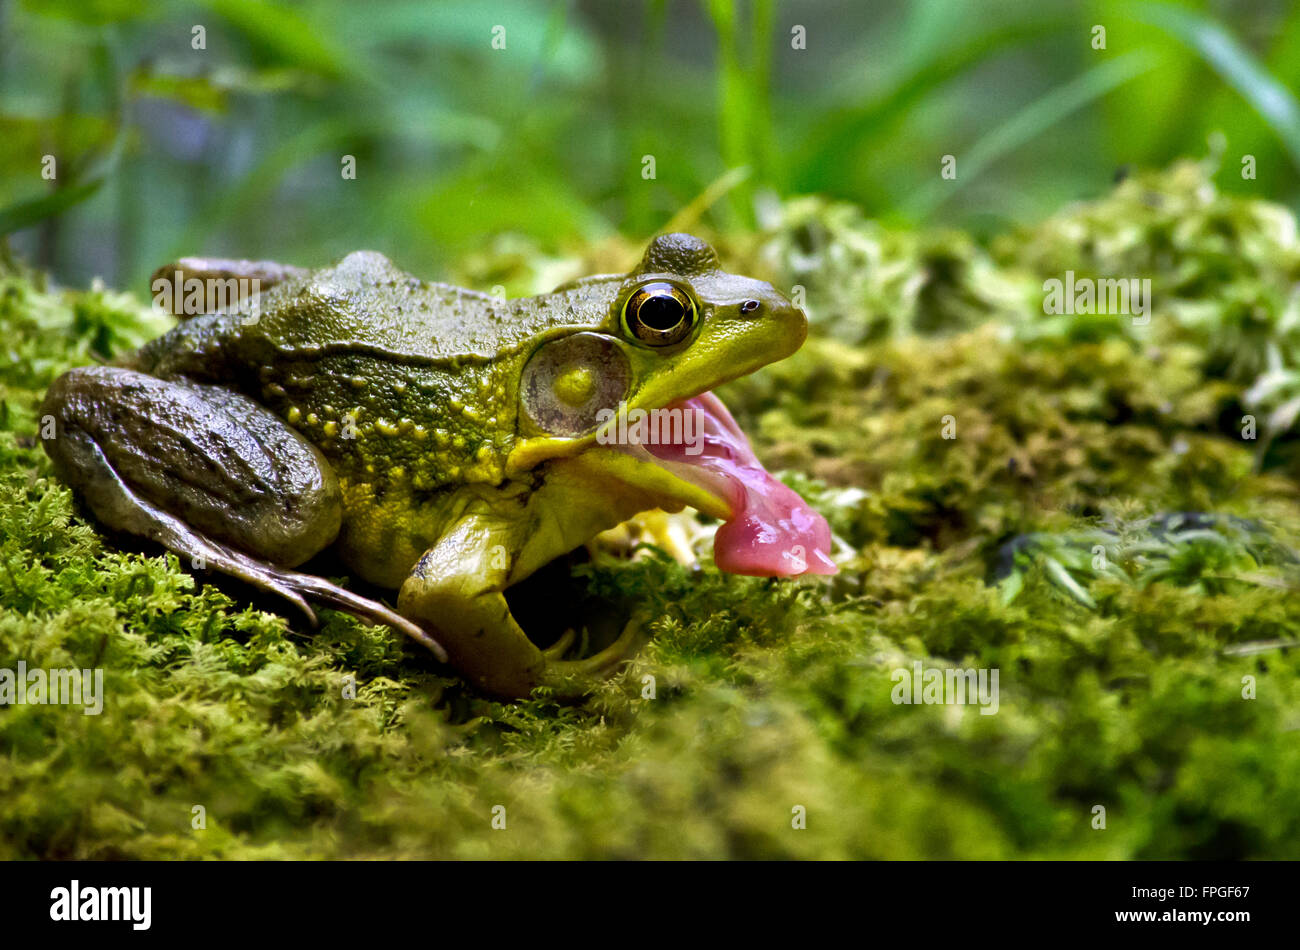 Frog feeding close up with mouth open - Stock Image